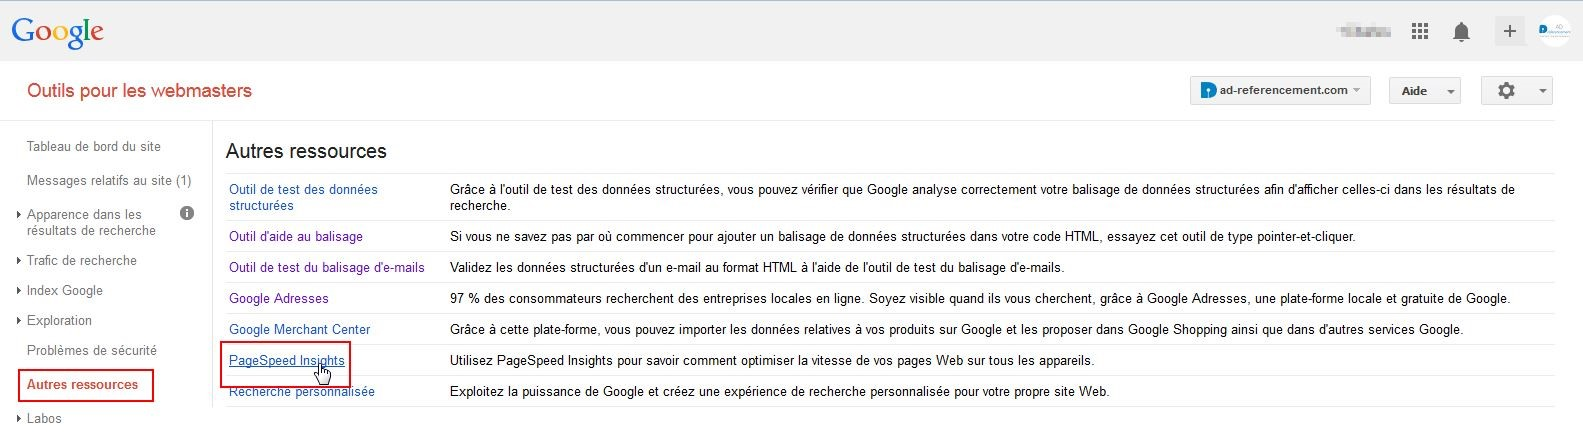 Google-pagespeed-insghts